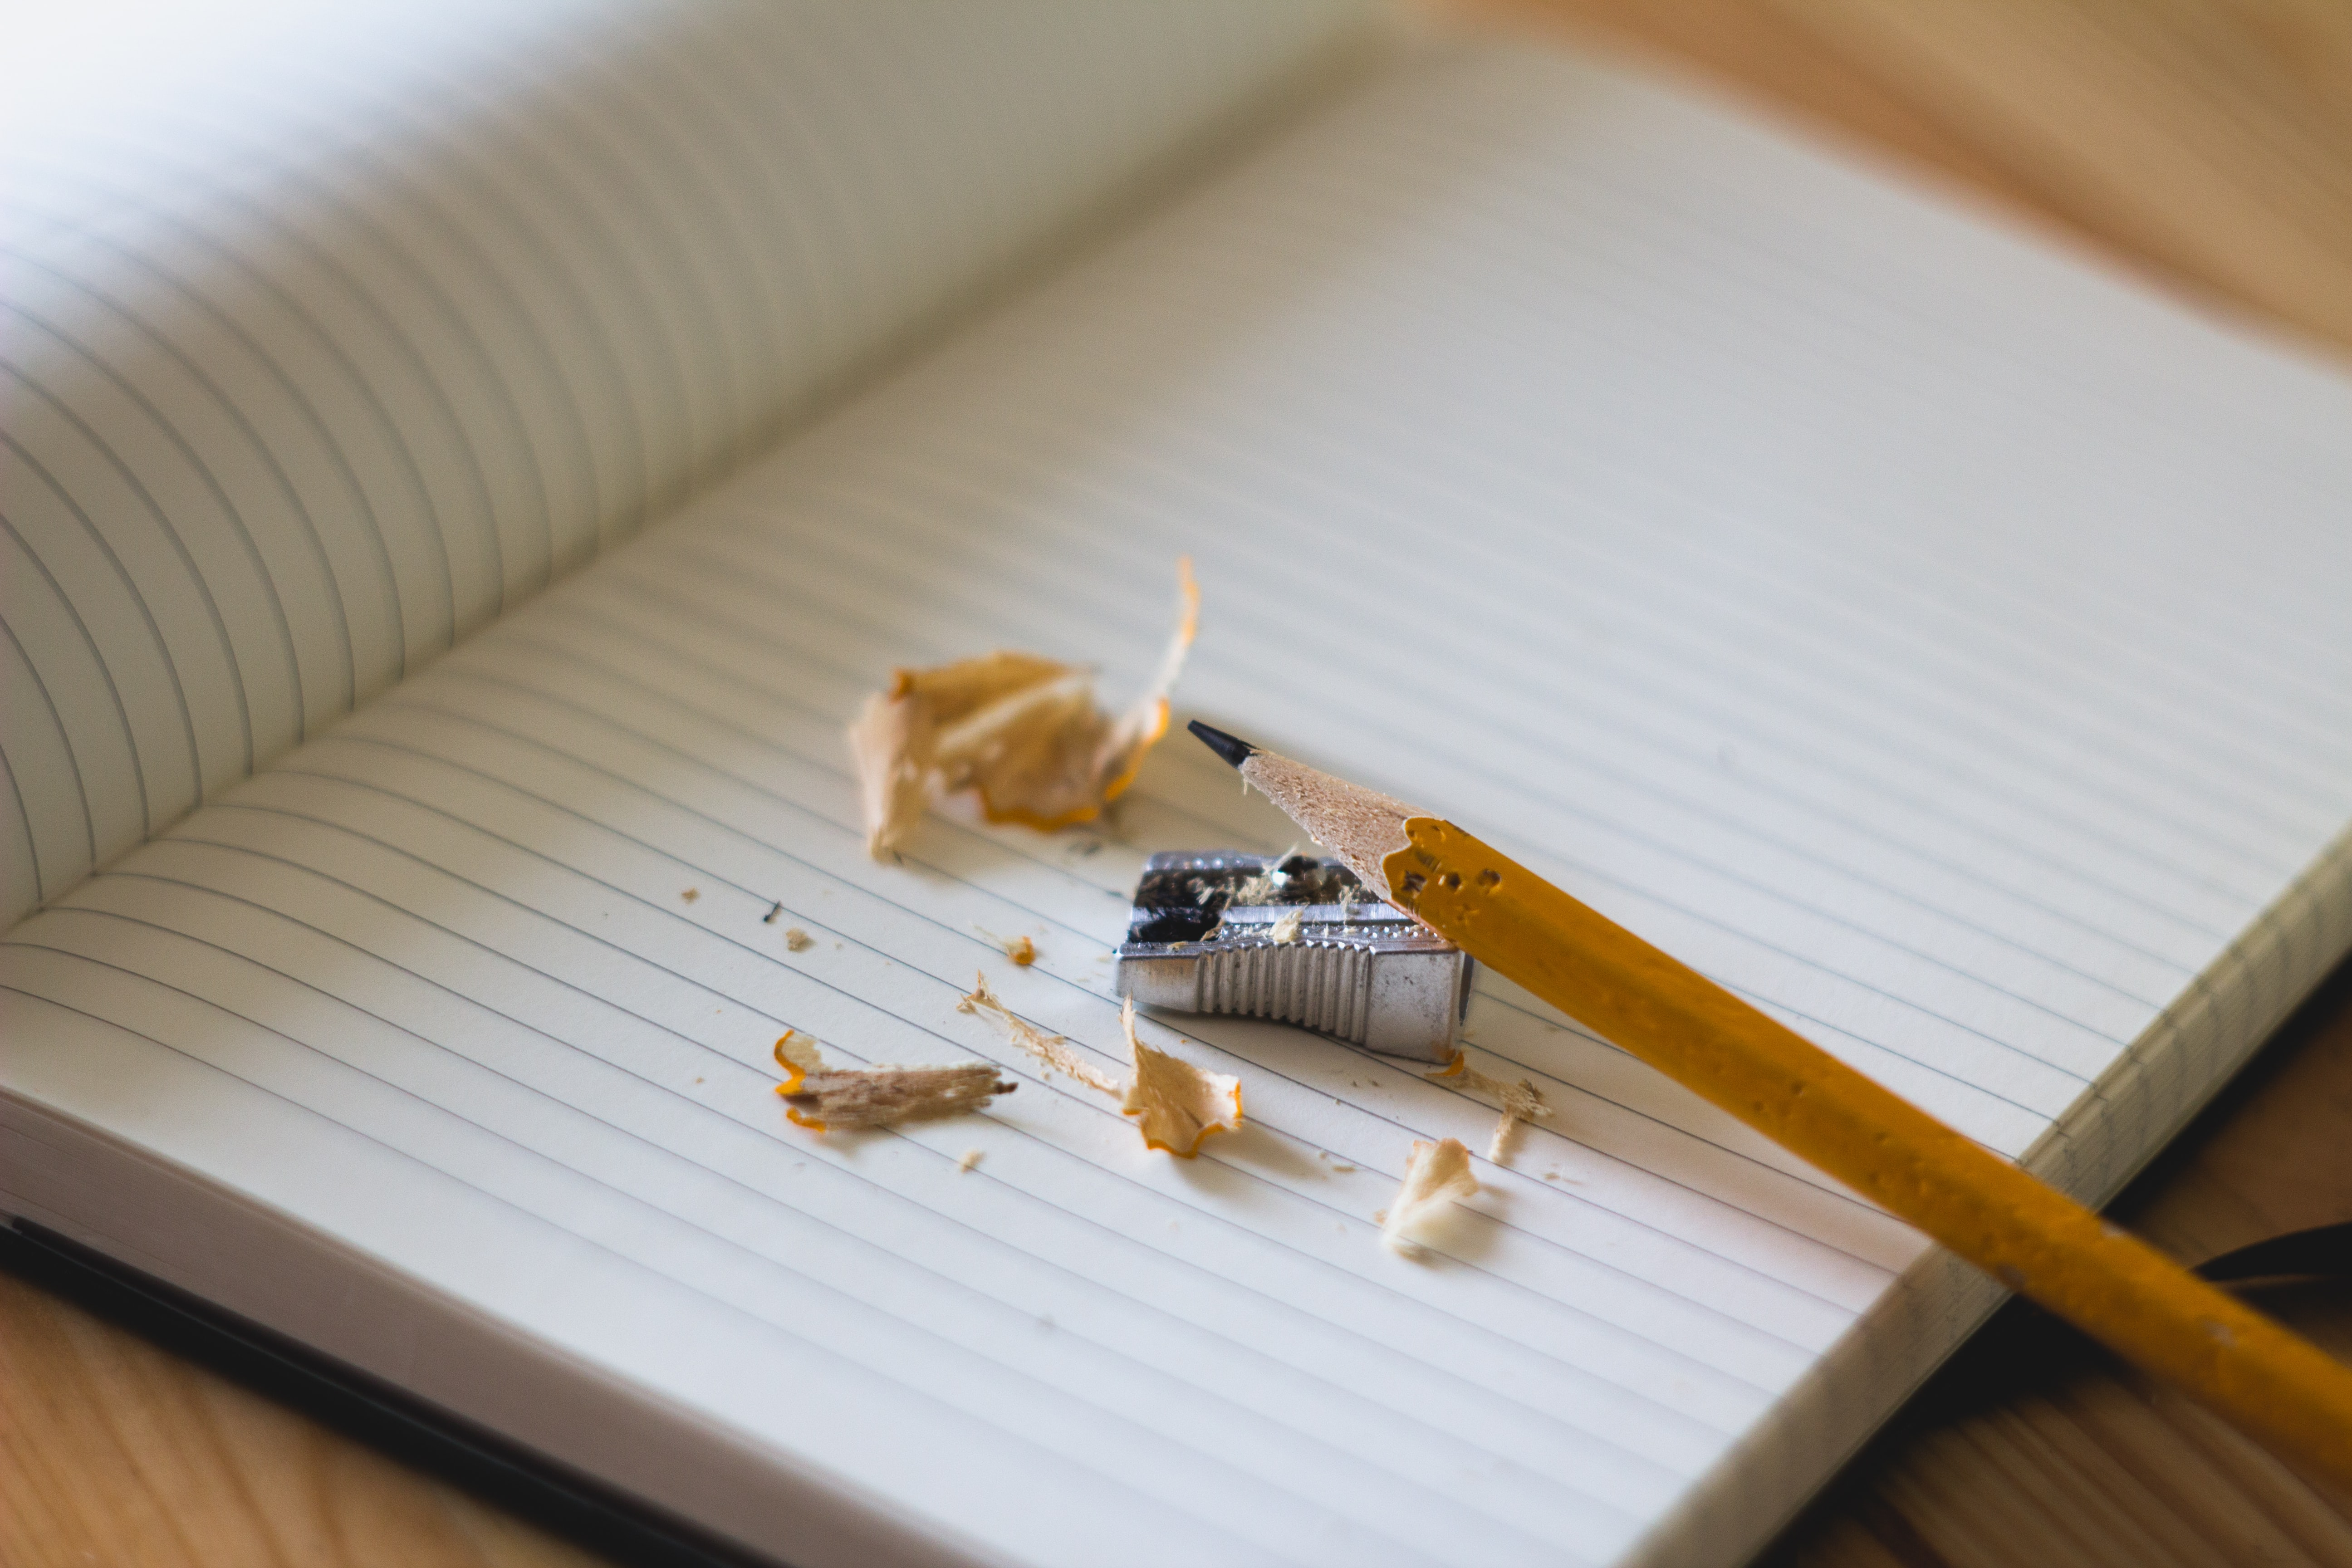 Pencil shavings around a pencil and a pencil sharpener on an open notebook